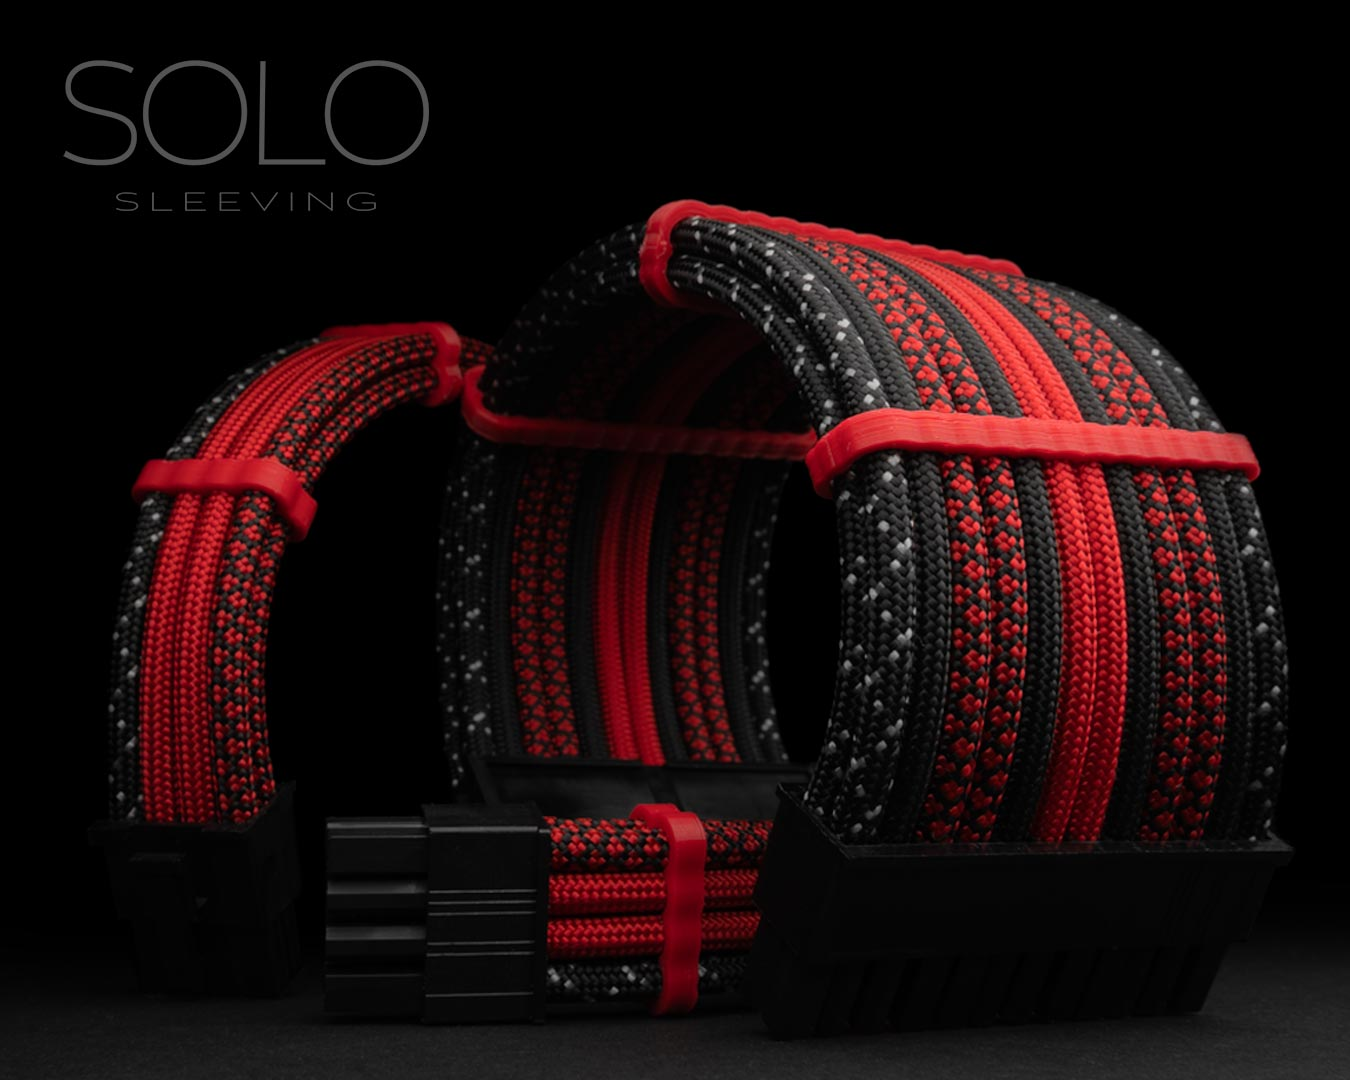 Red and Black Sleeved PC Cables